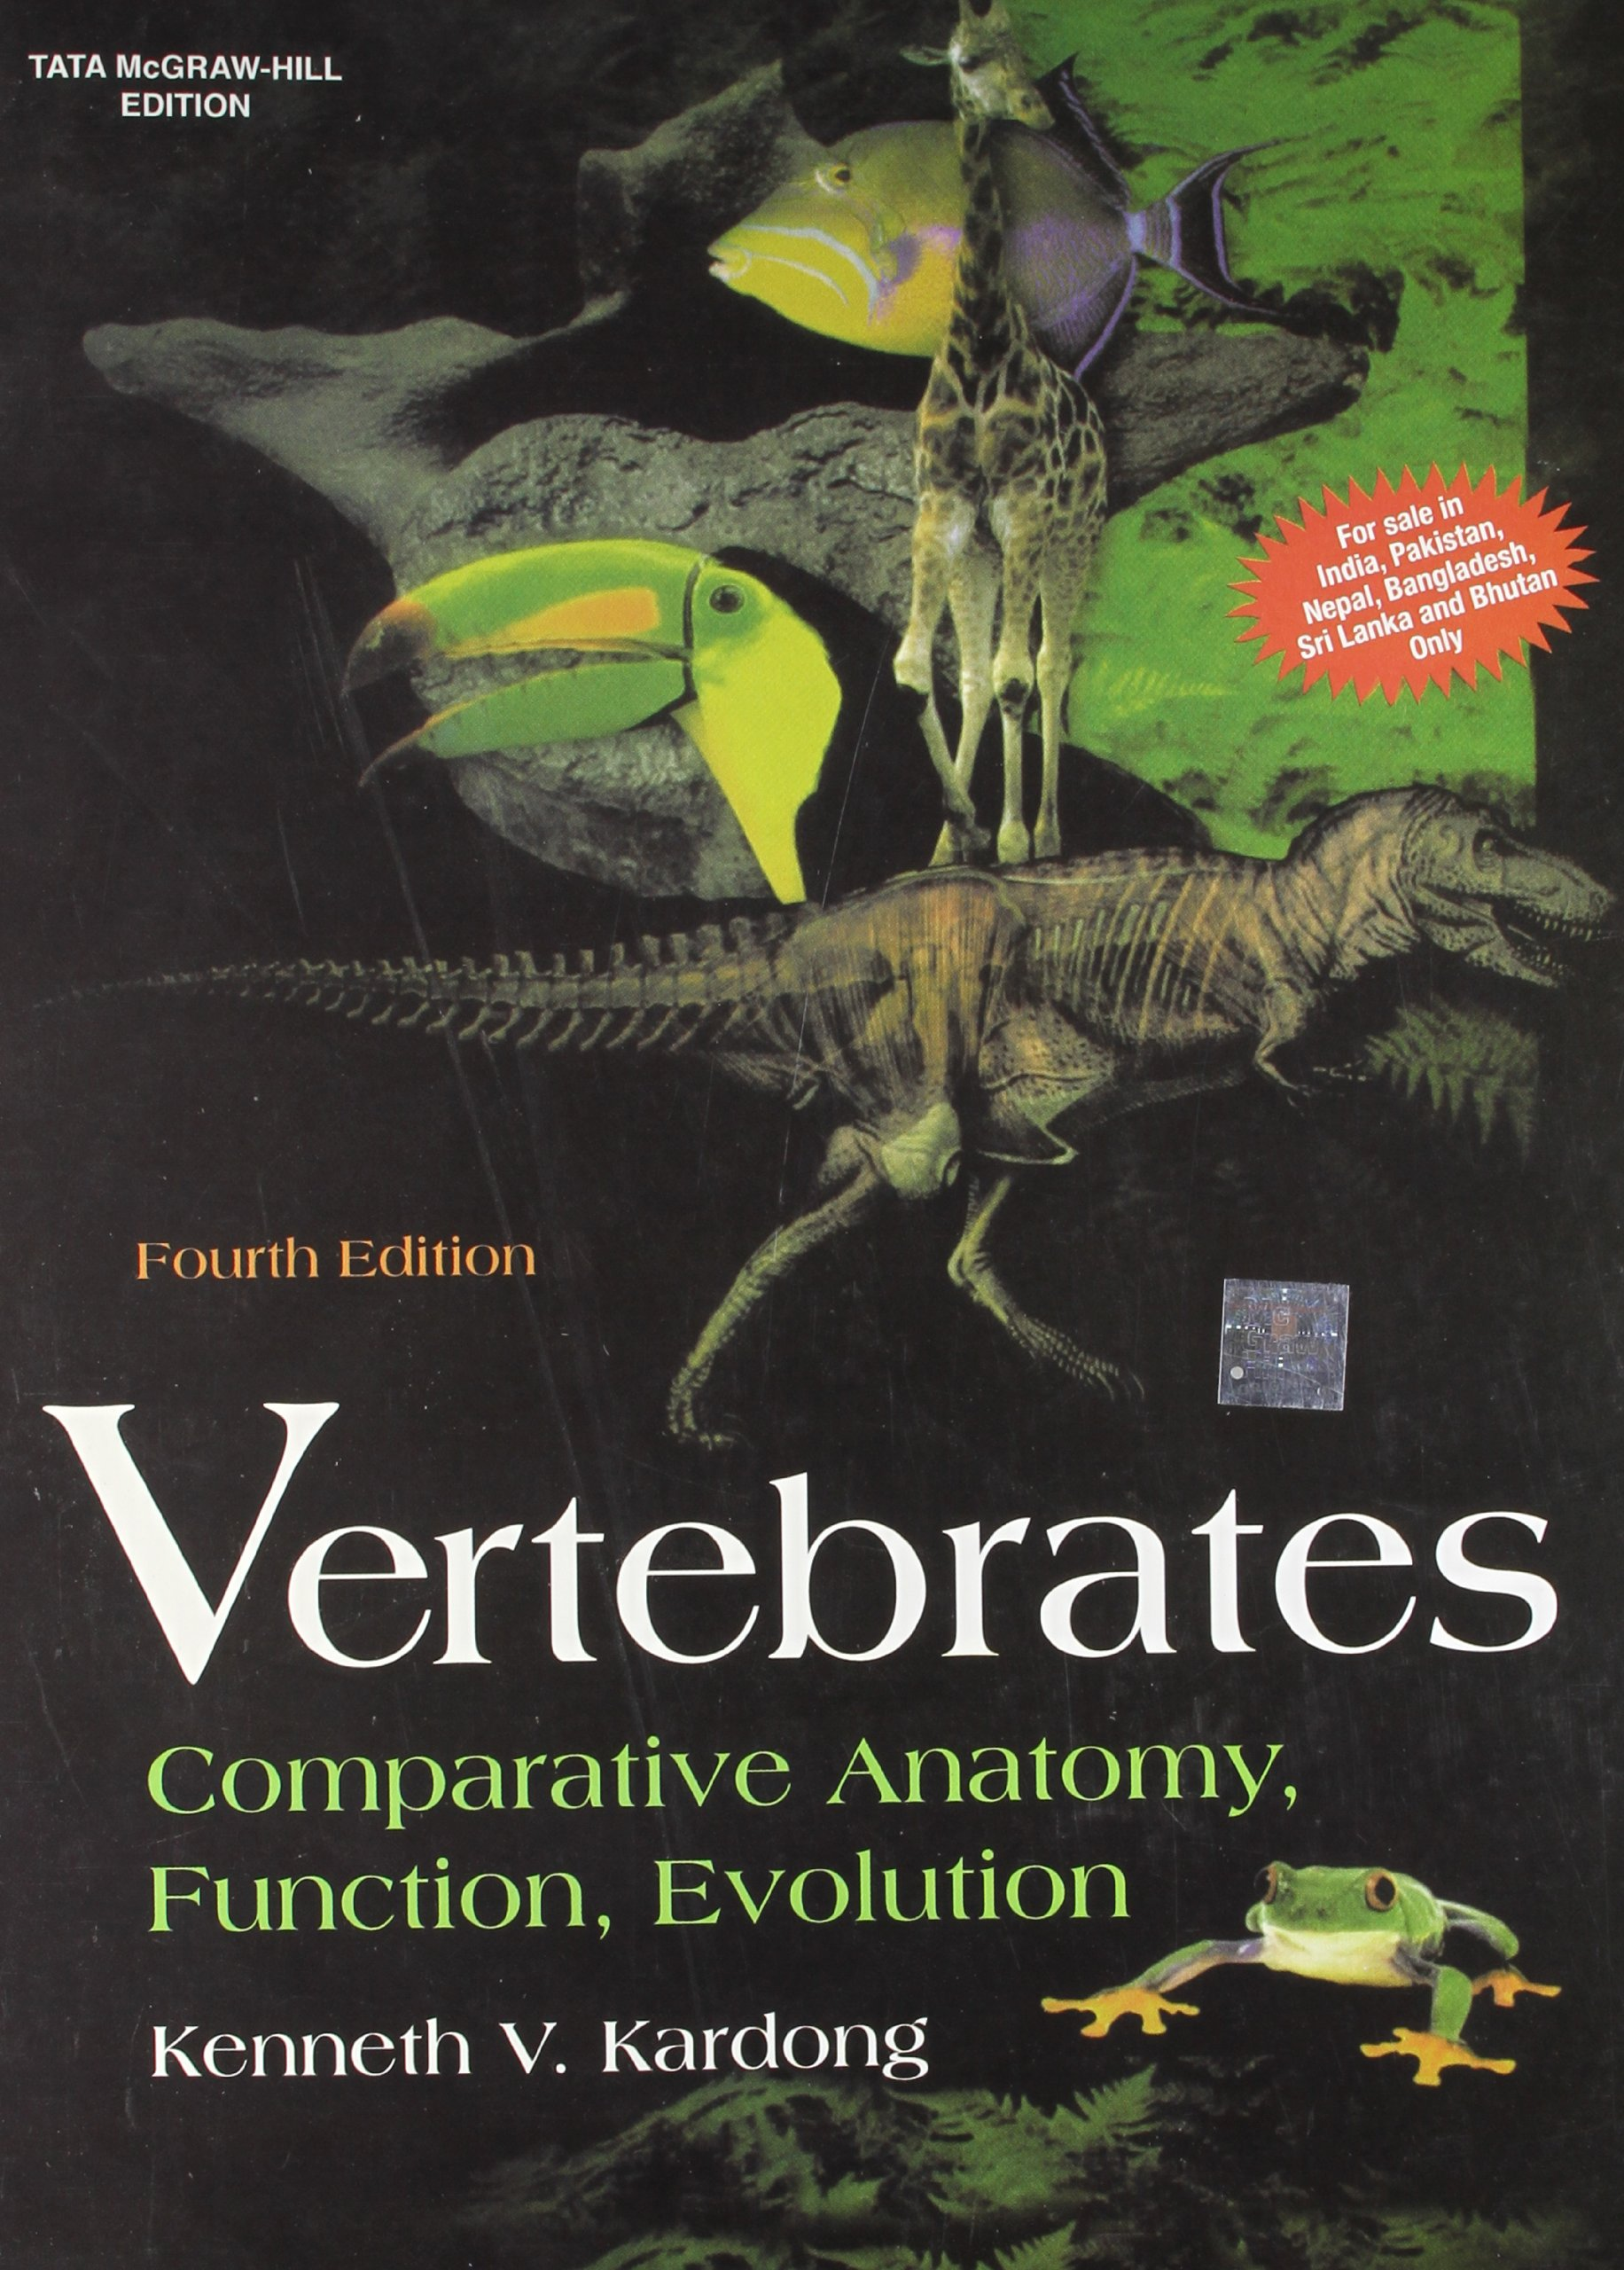 Vertebrates: Comparative Anatomy, Function, Evolution 4th Edition ...